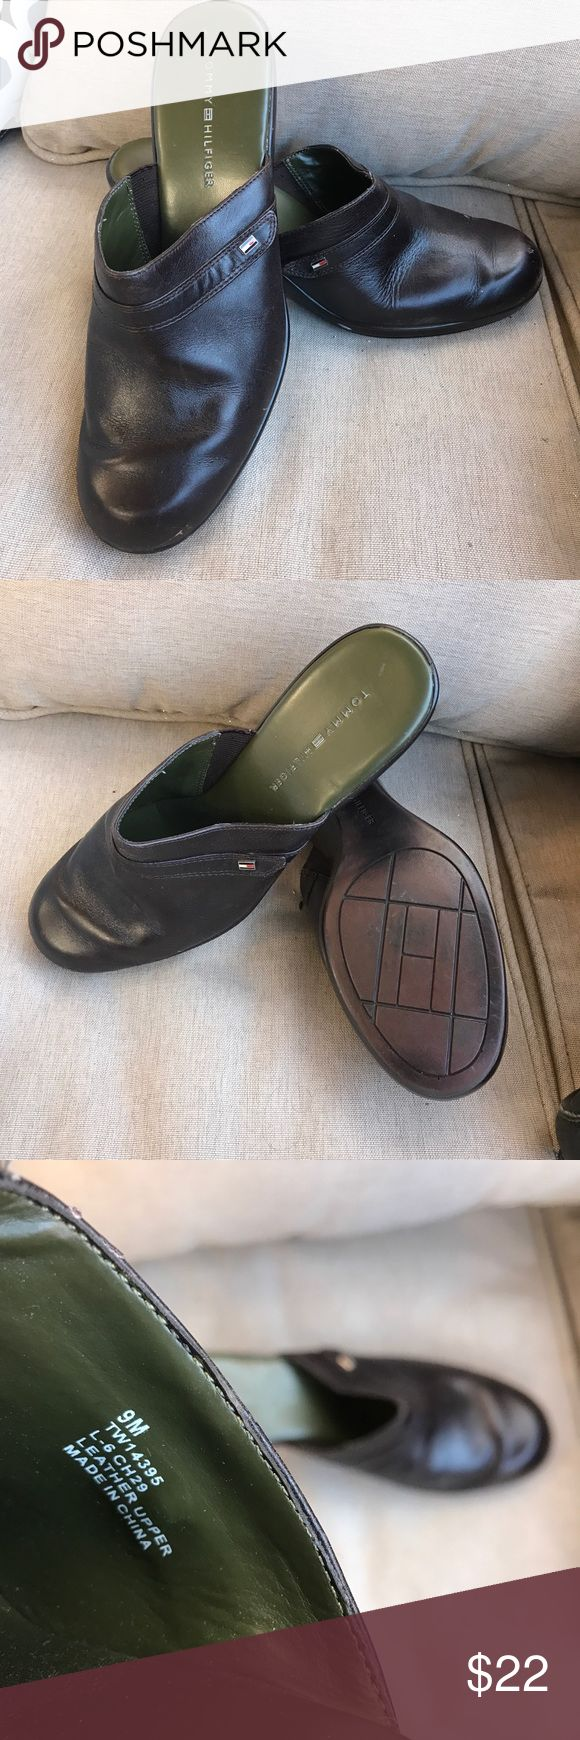 💥SALE‼️💥  Tommy Hilfiger Clogs These Tommy Hilfiger Clogs are in great condition! Brown leather uppers. Women's size 9 (40) Tommy Hilfiger Shoes Mules & Clogs